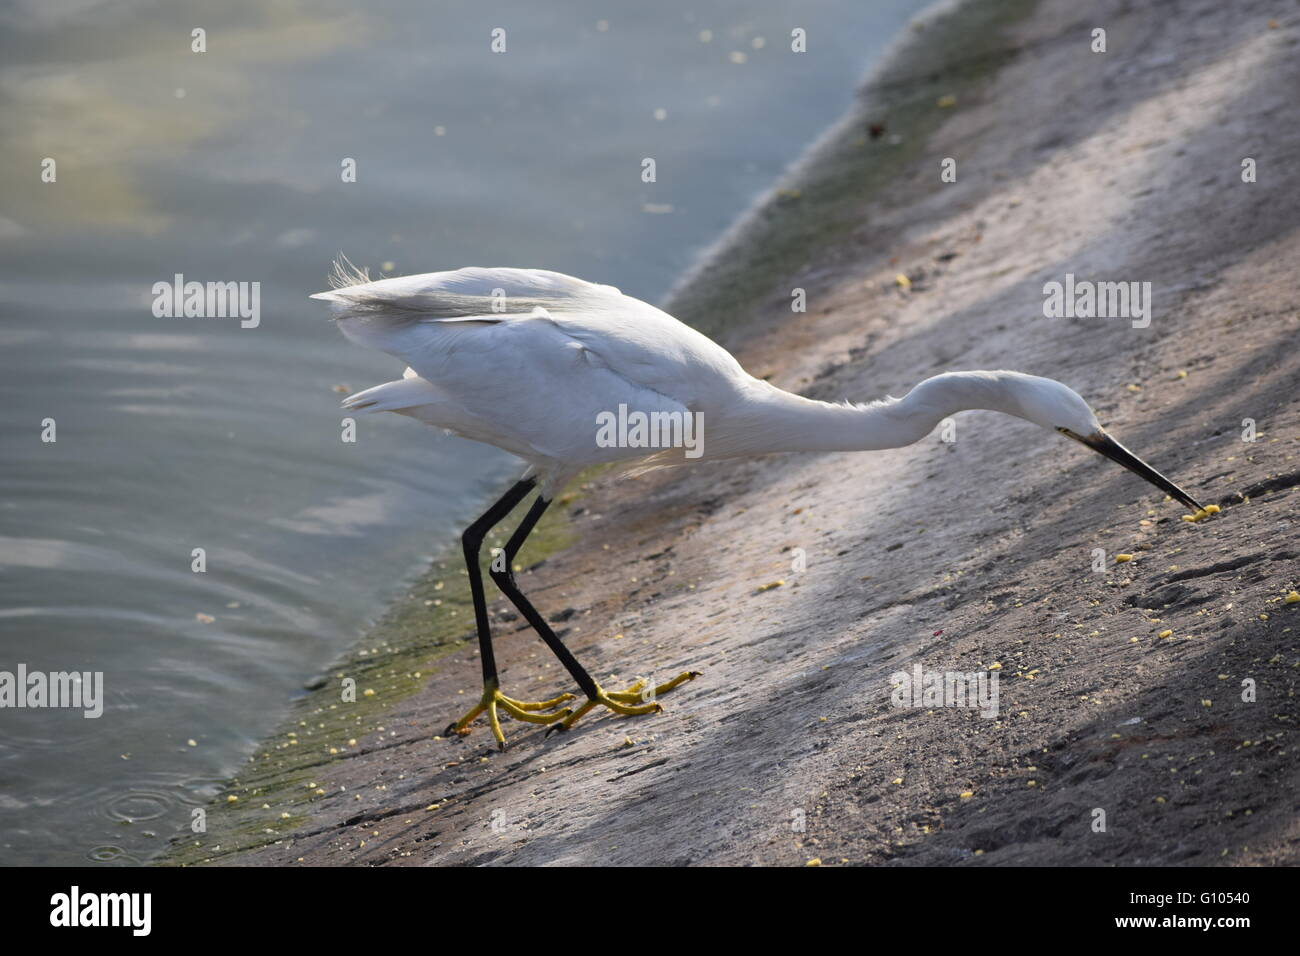 bird patiently waiting on the edge of the river , waiting to catch a fish - Stock Image